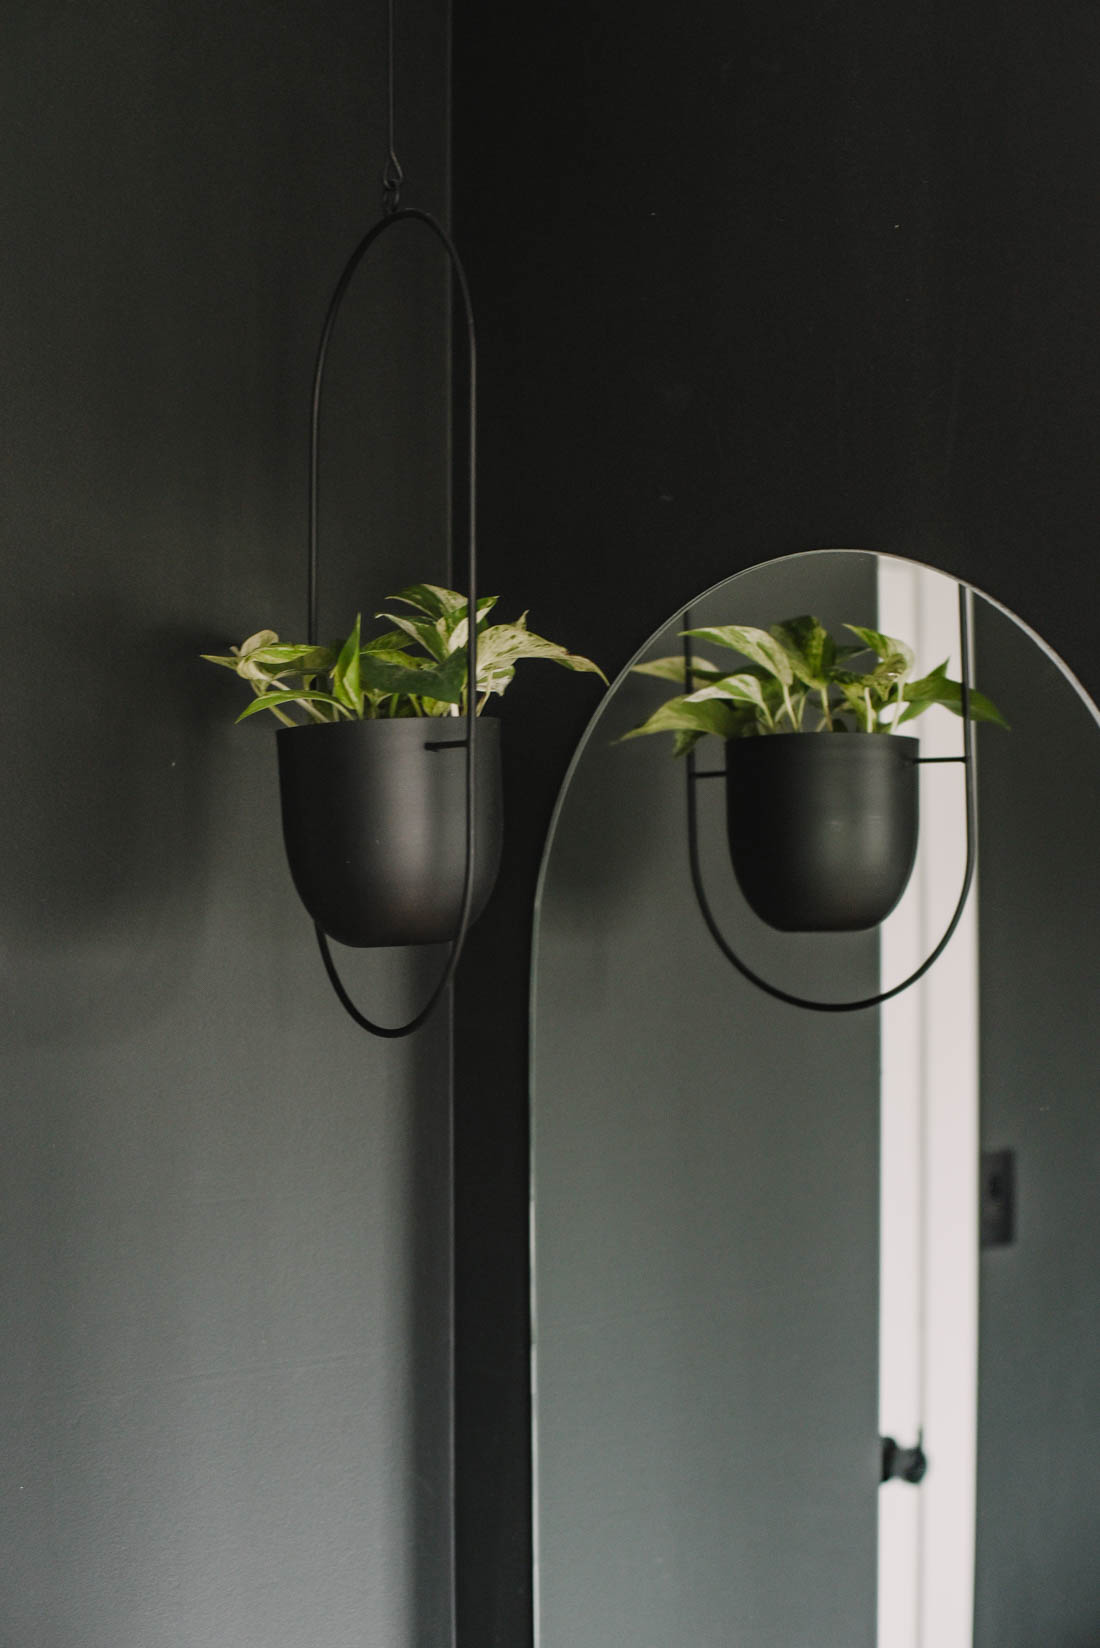 Modern Pill shaped mirror with hanging plant